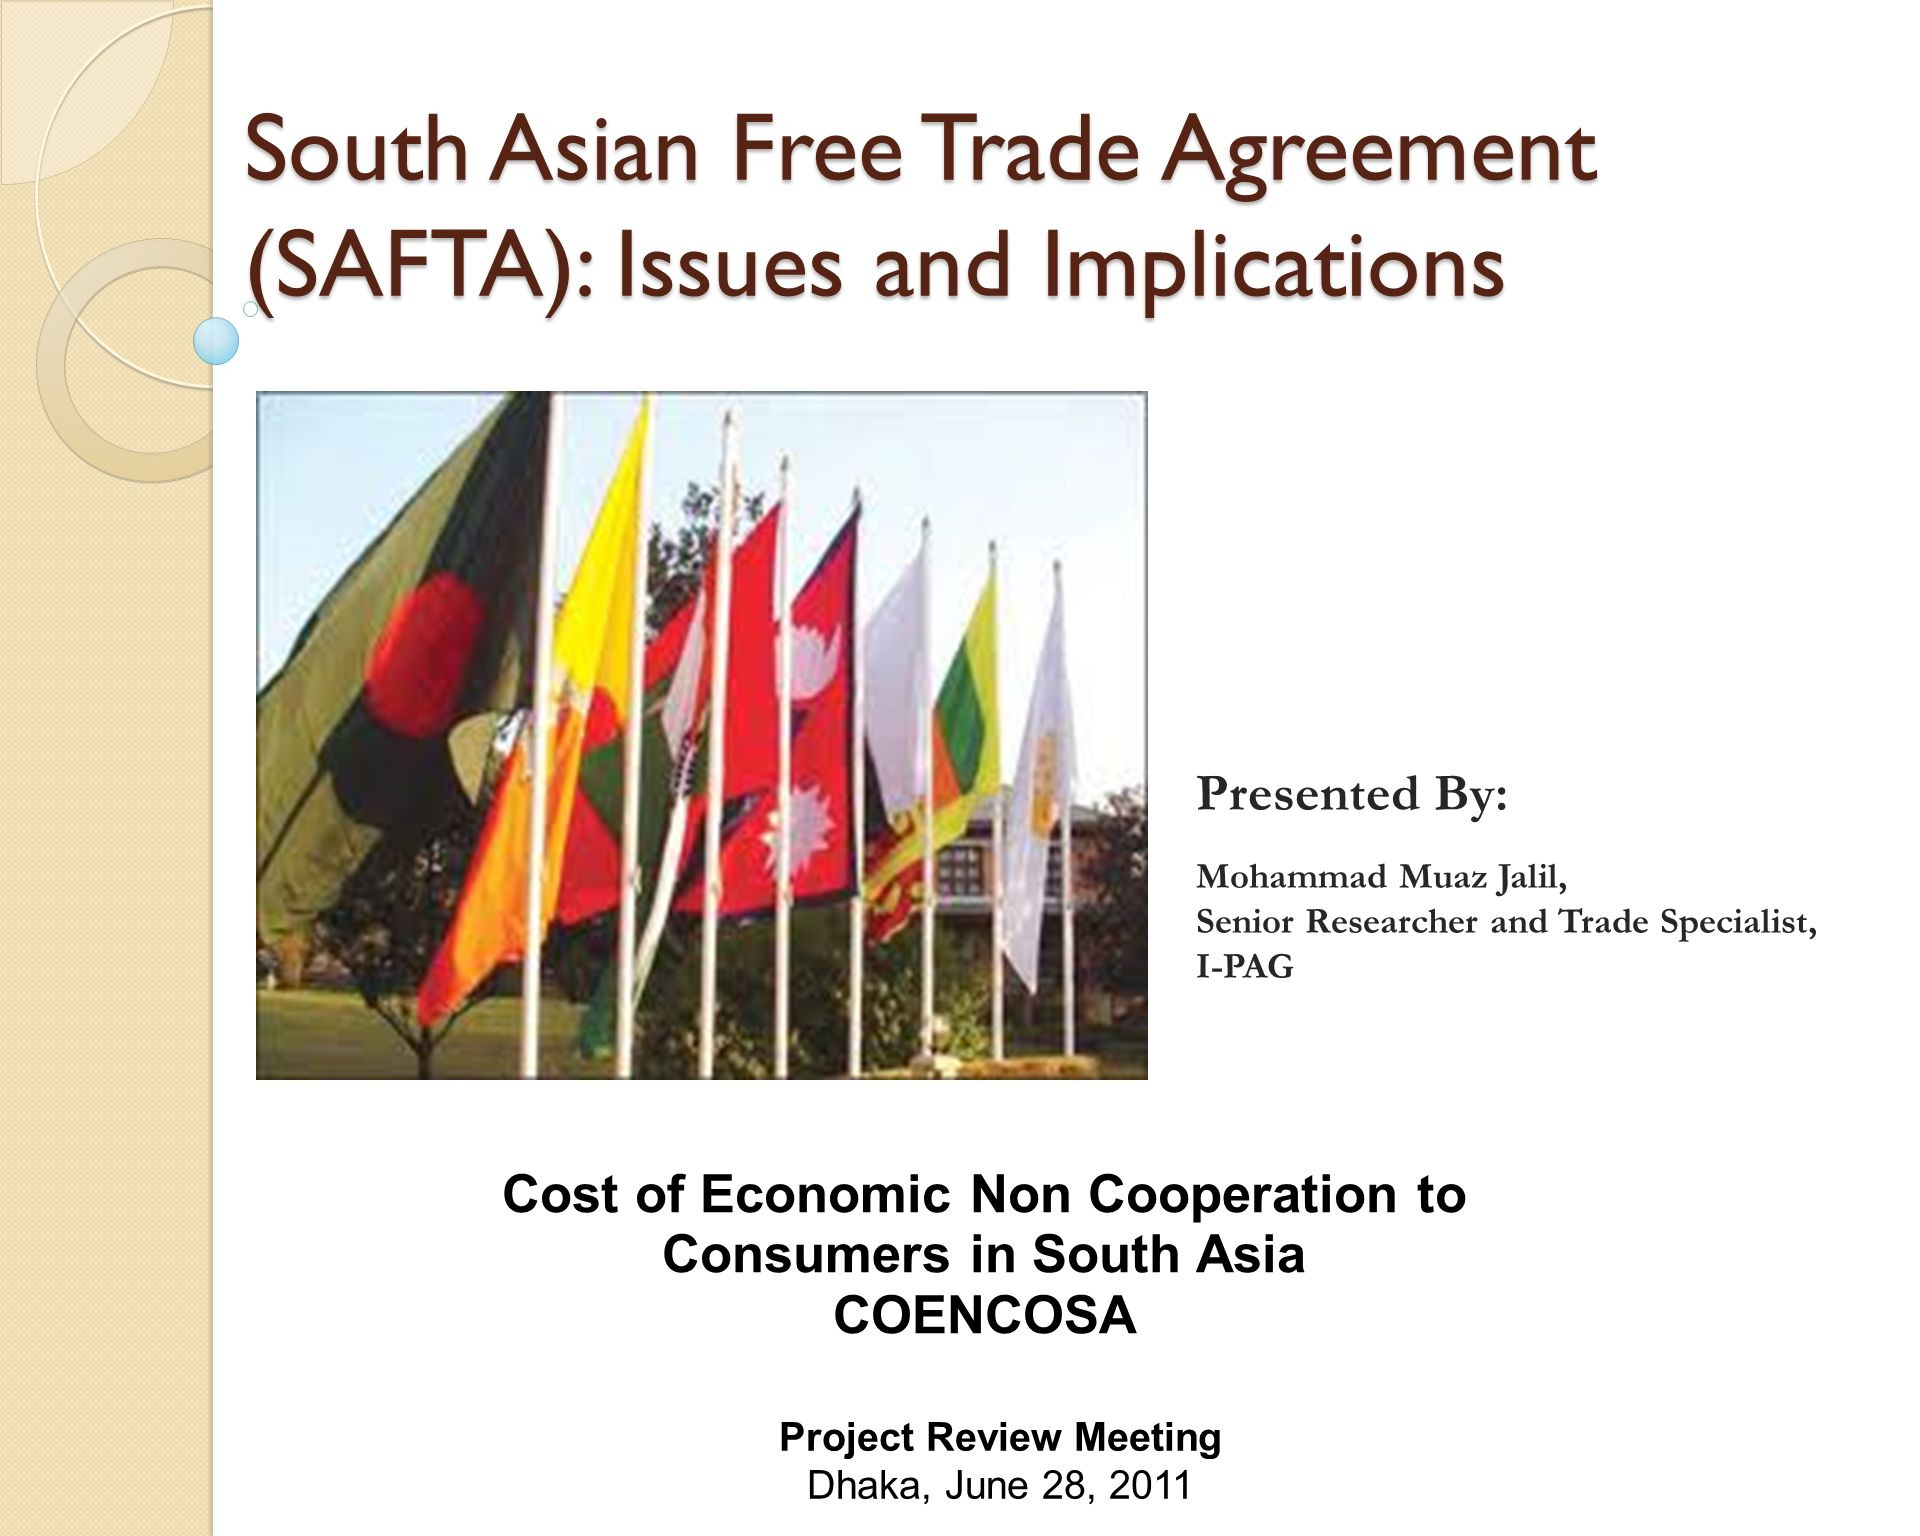 implications of south asia free trade De mel, d (2010) bilateral free trade agreements in saarc and implications for safta in s ahmeds kelegama & e ghani (eds), promoting economic cooperation in south asia: beyond safta (pp 89-109.